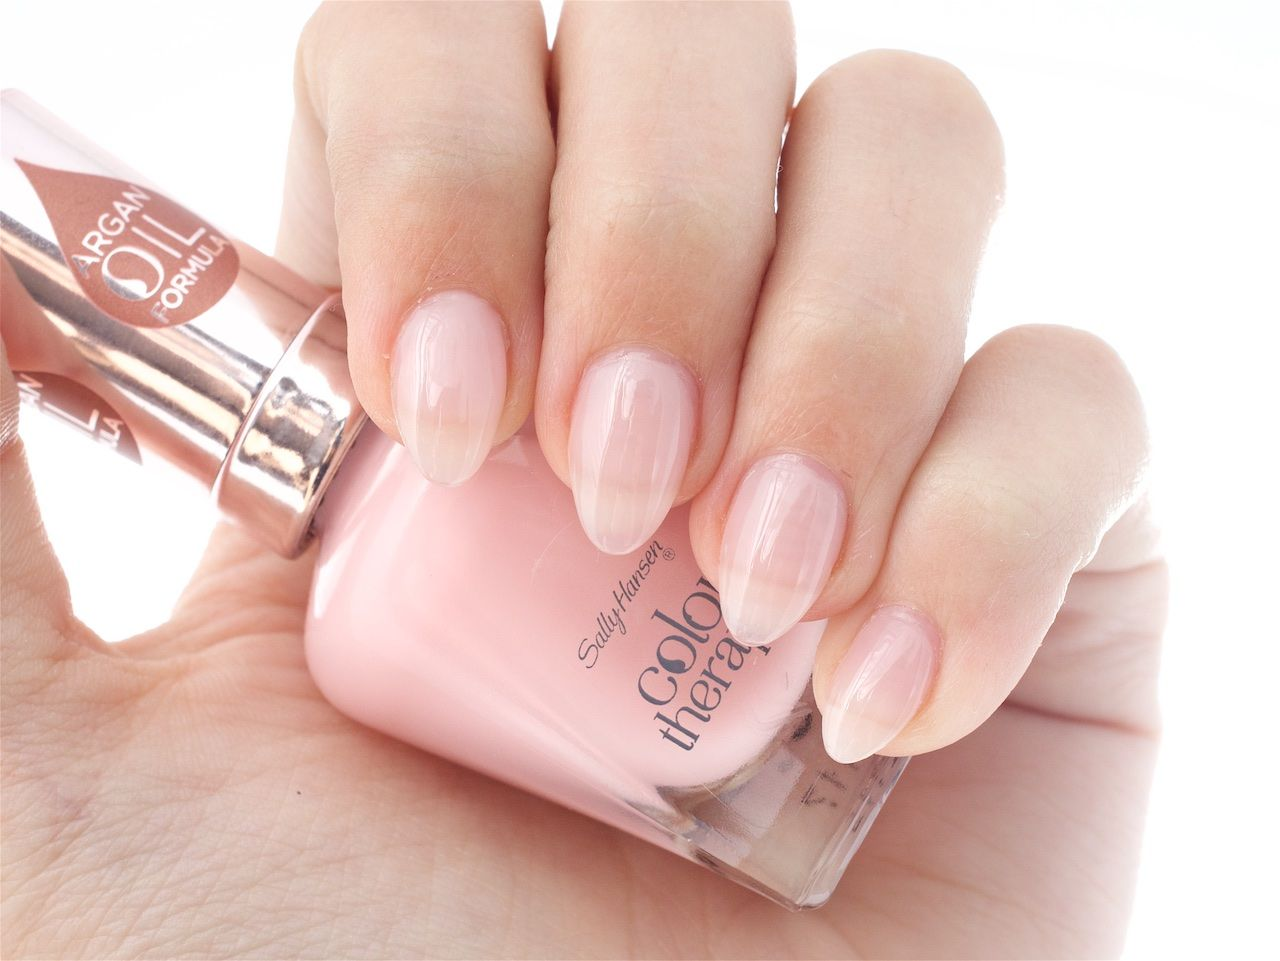 Colour therapy for beauty - Sally Hansen Color Therapy In Rosy Quartz